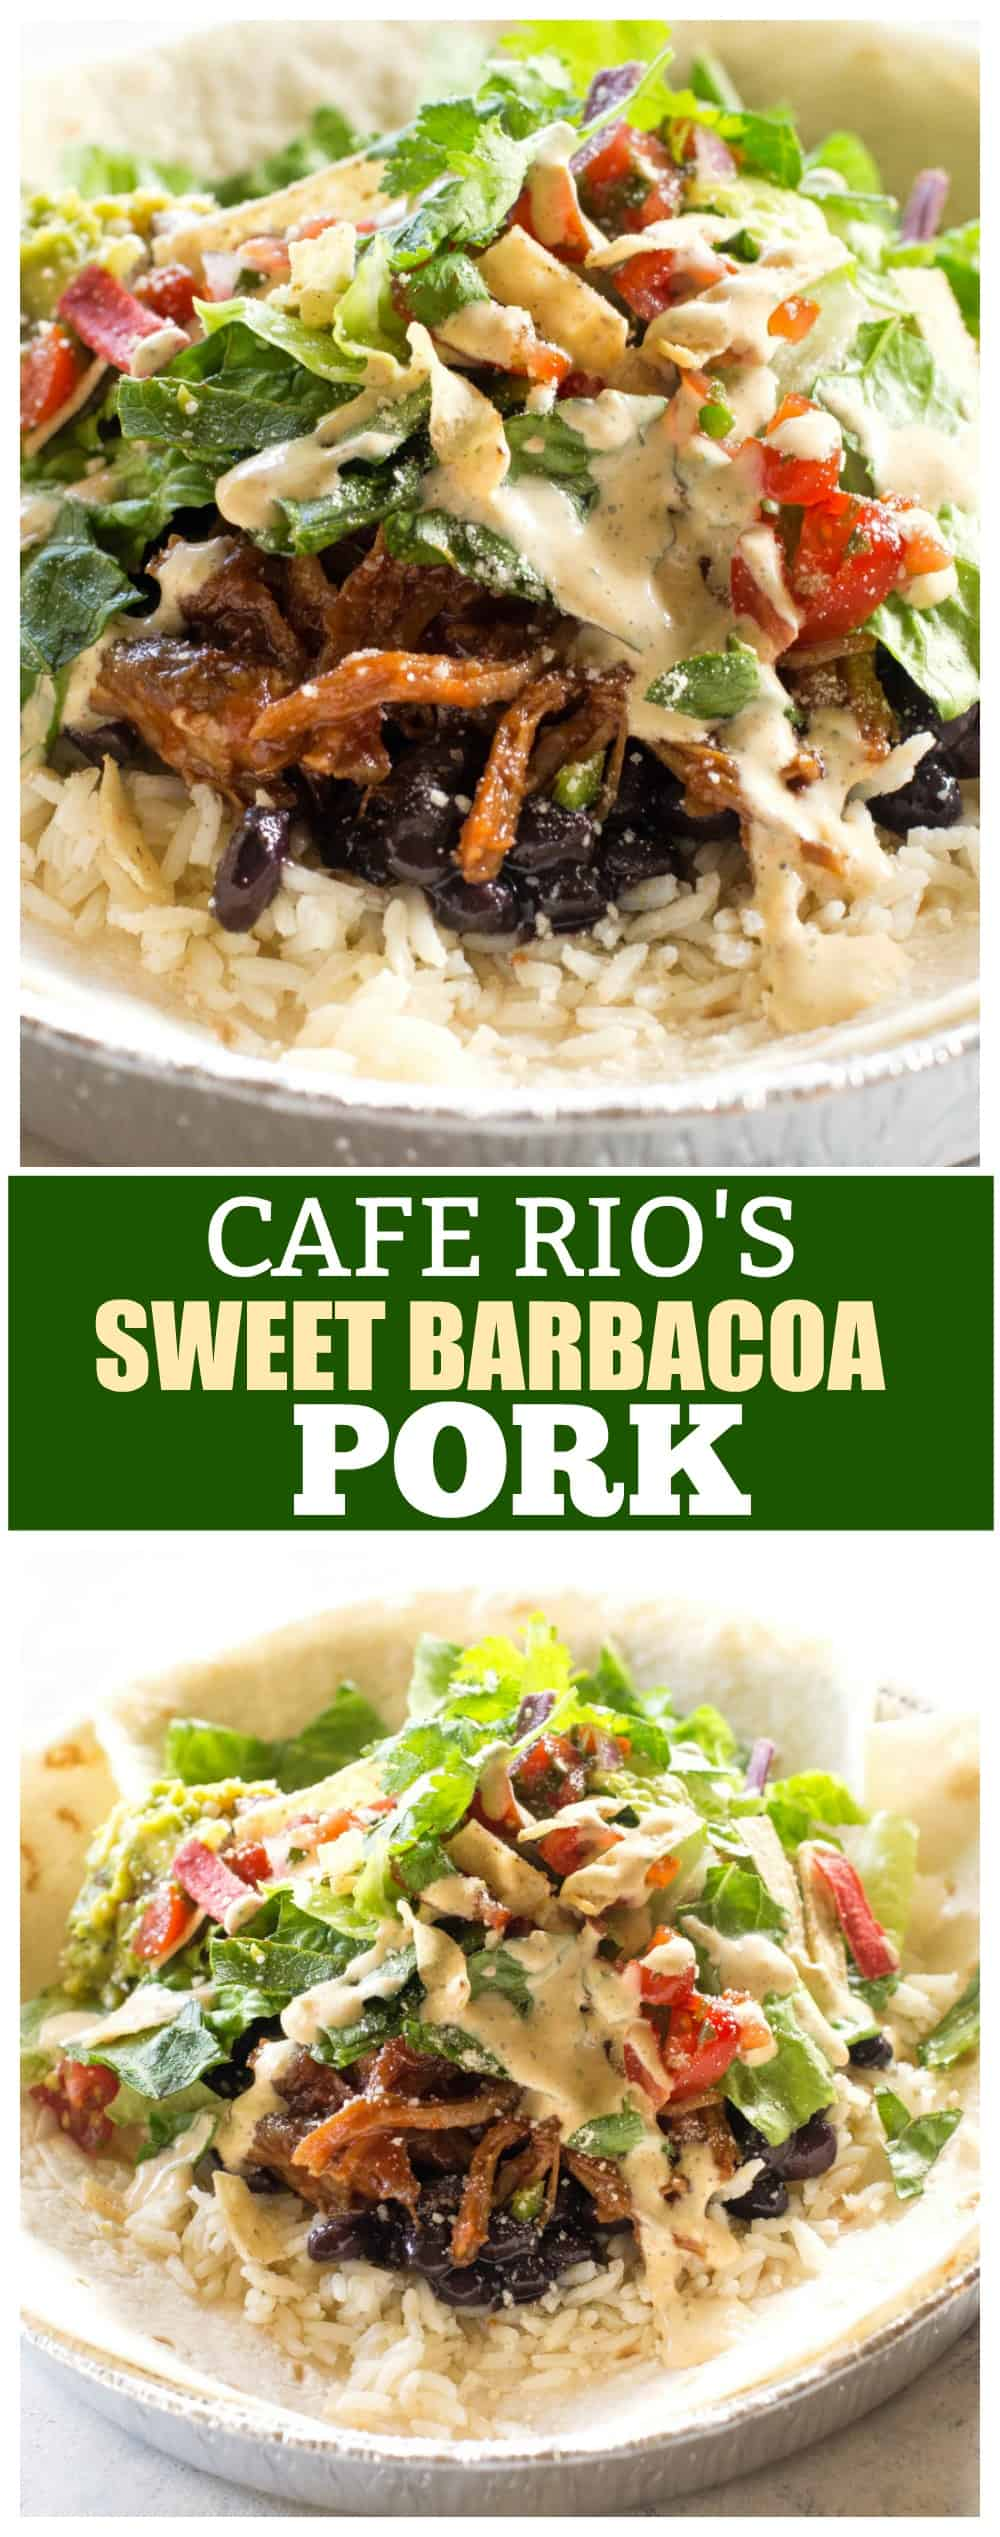 Cafe Rio Sweet Barbacoa Pork